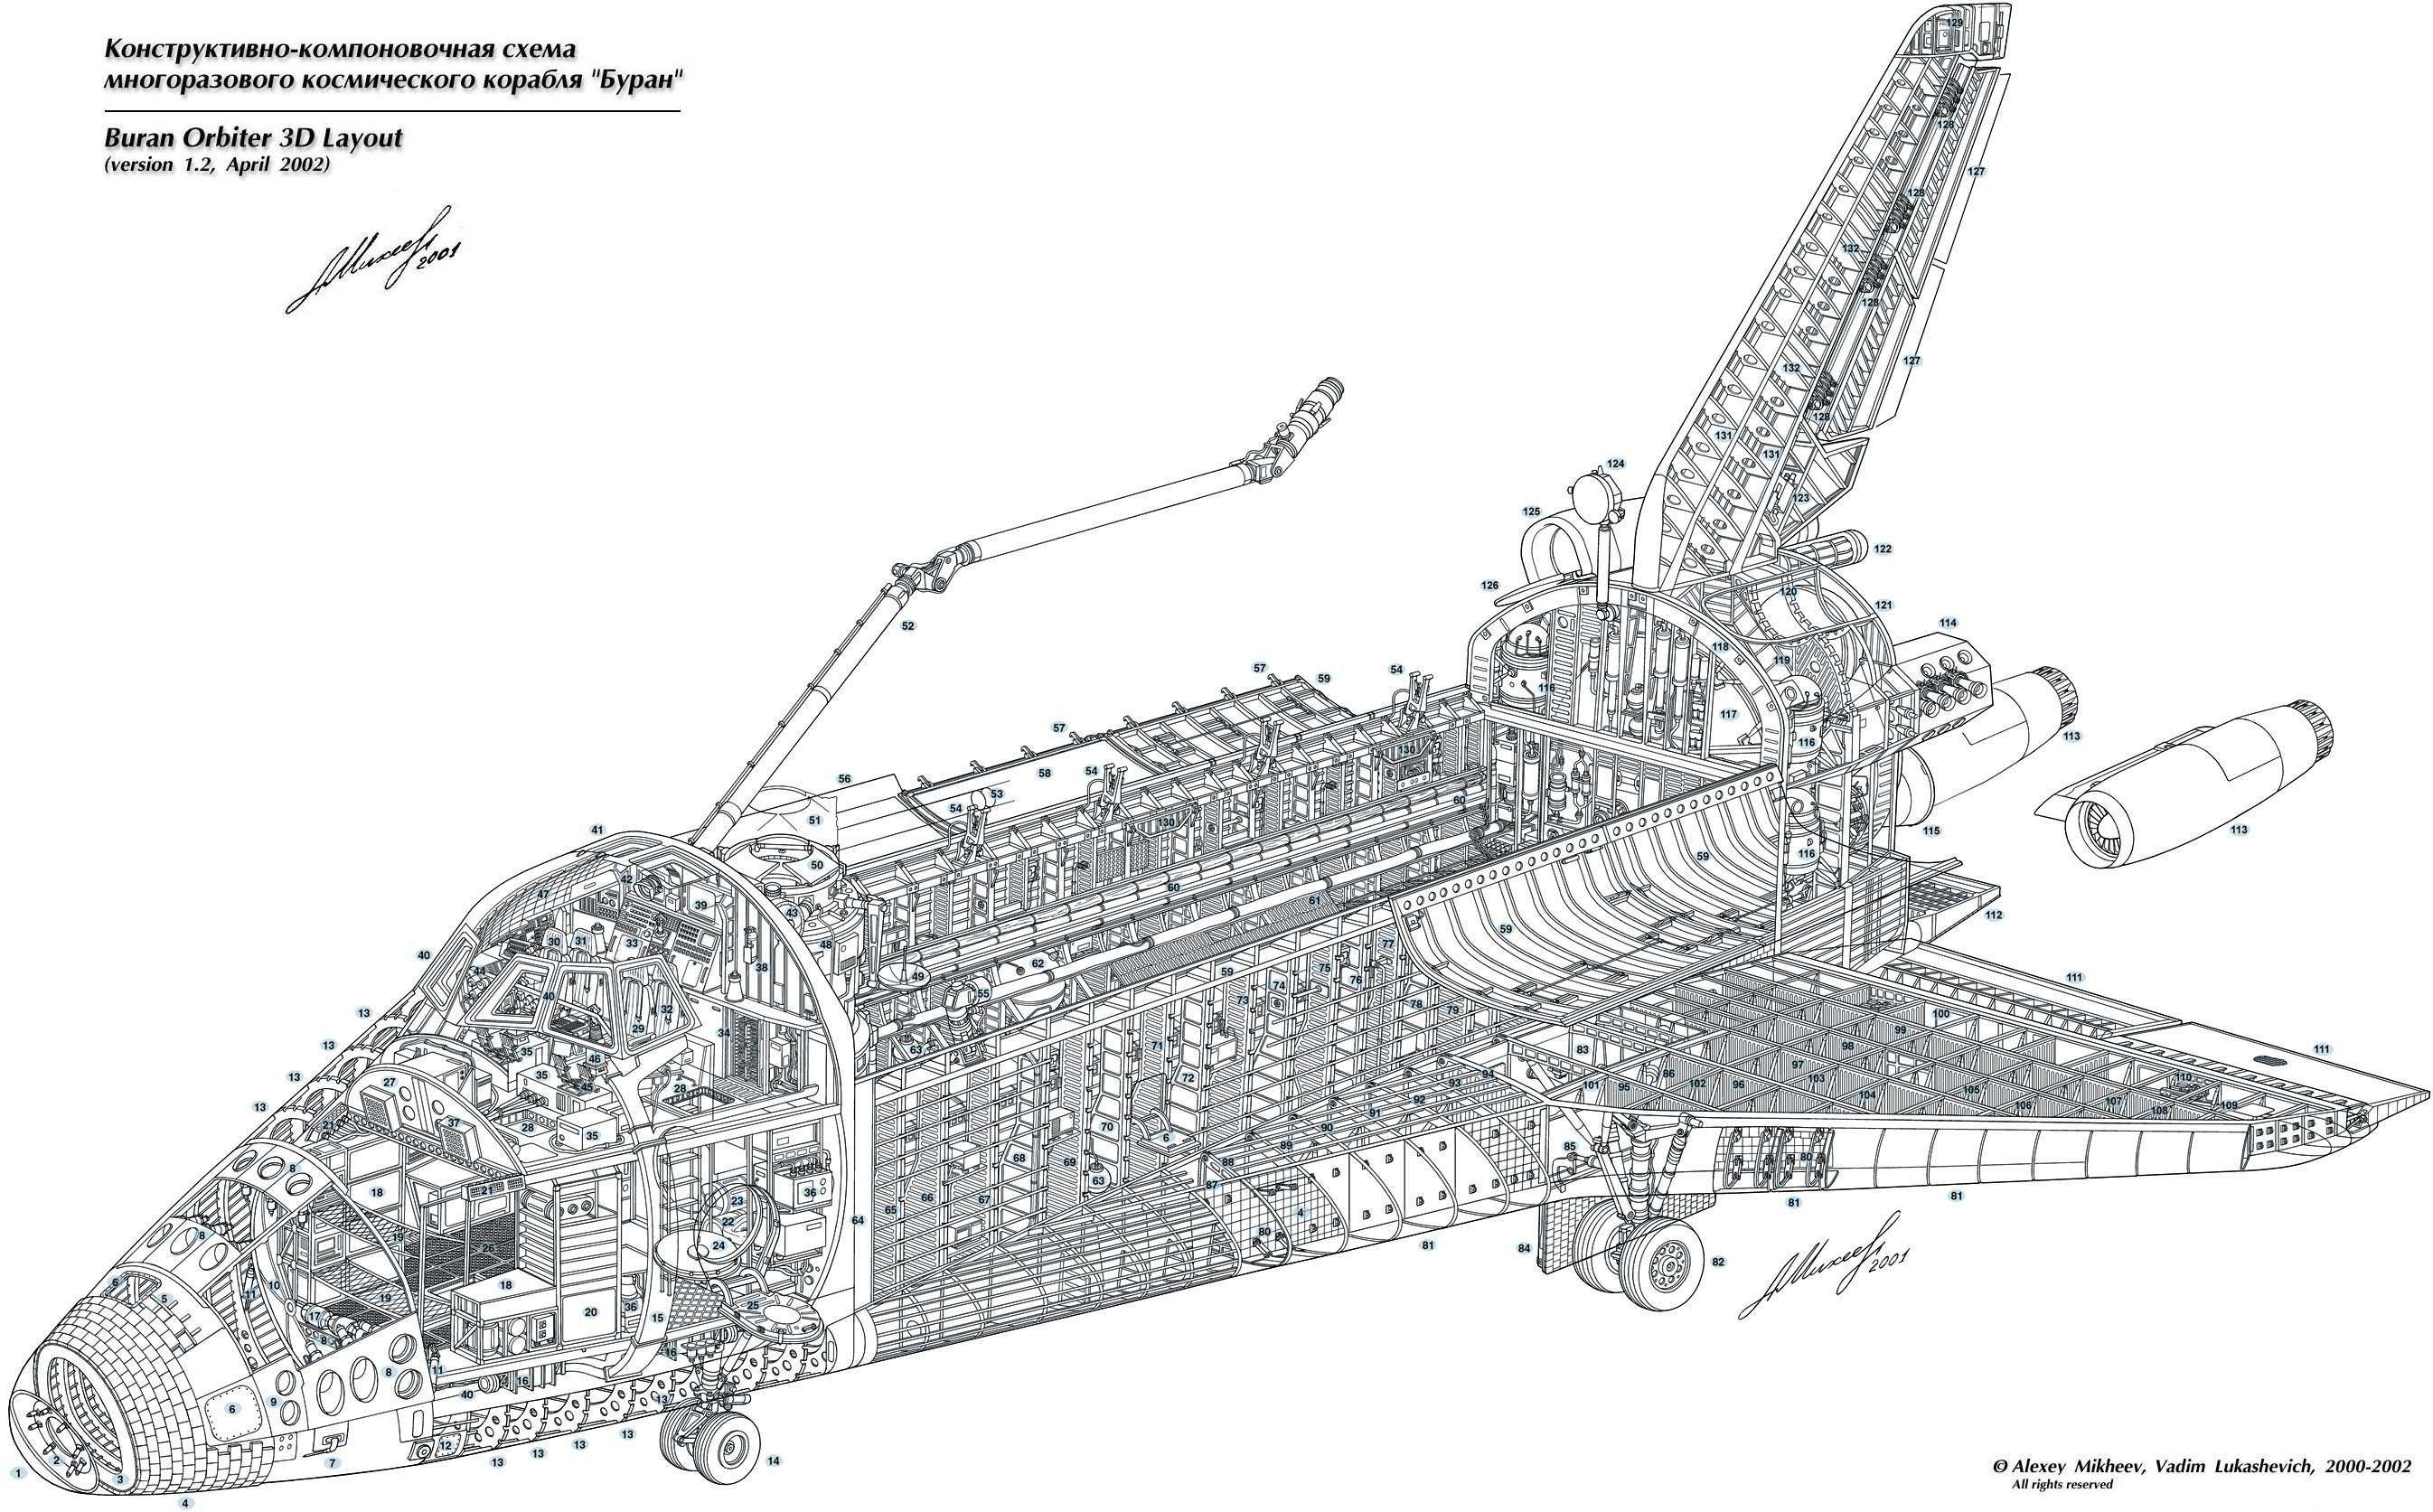 plans schematic soviet russian shuttle russian space shuttle ussr rh pinterest com Military Space Shuttle Future Space Shuttle